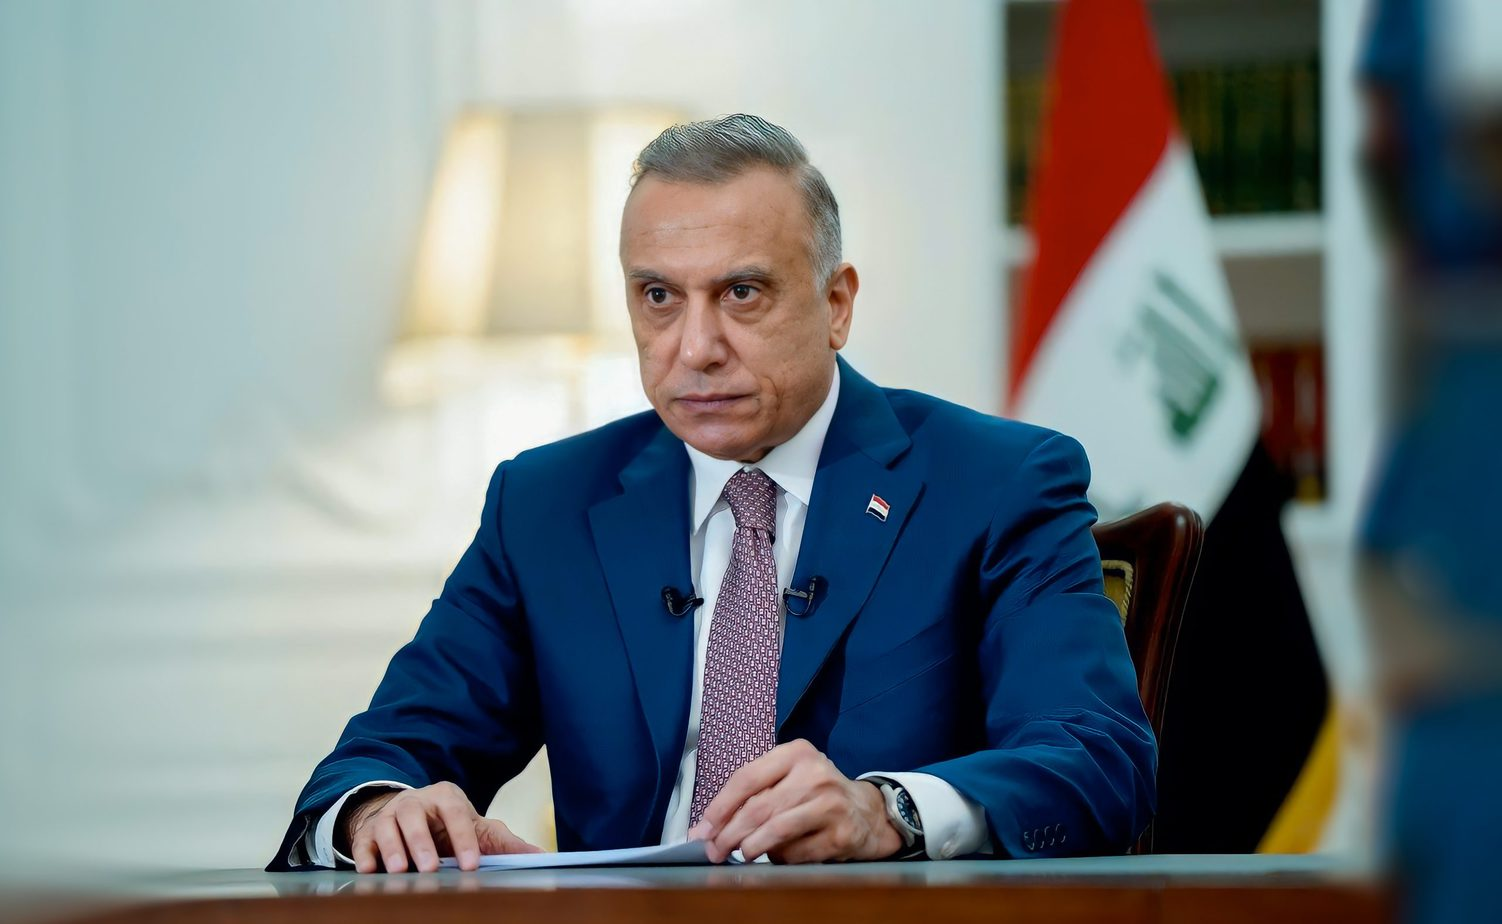 Prime Minister Mustafa Al-Kadhimi's speech on the occasion of the conclusion of the visit of His Holiness Pope Francis to Iraq Nwdn_file_temp_1615196352029-scaled